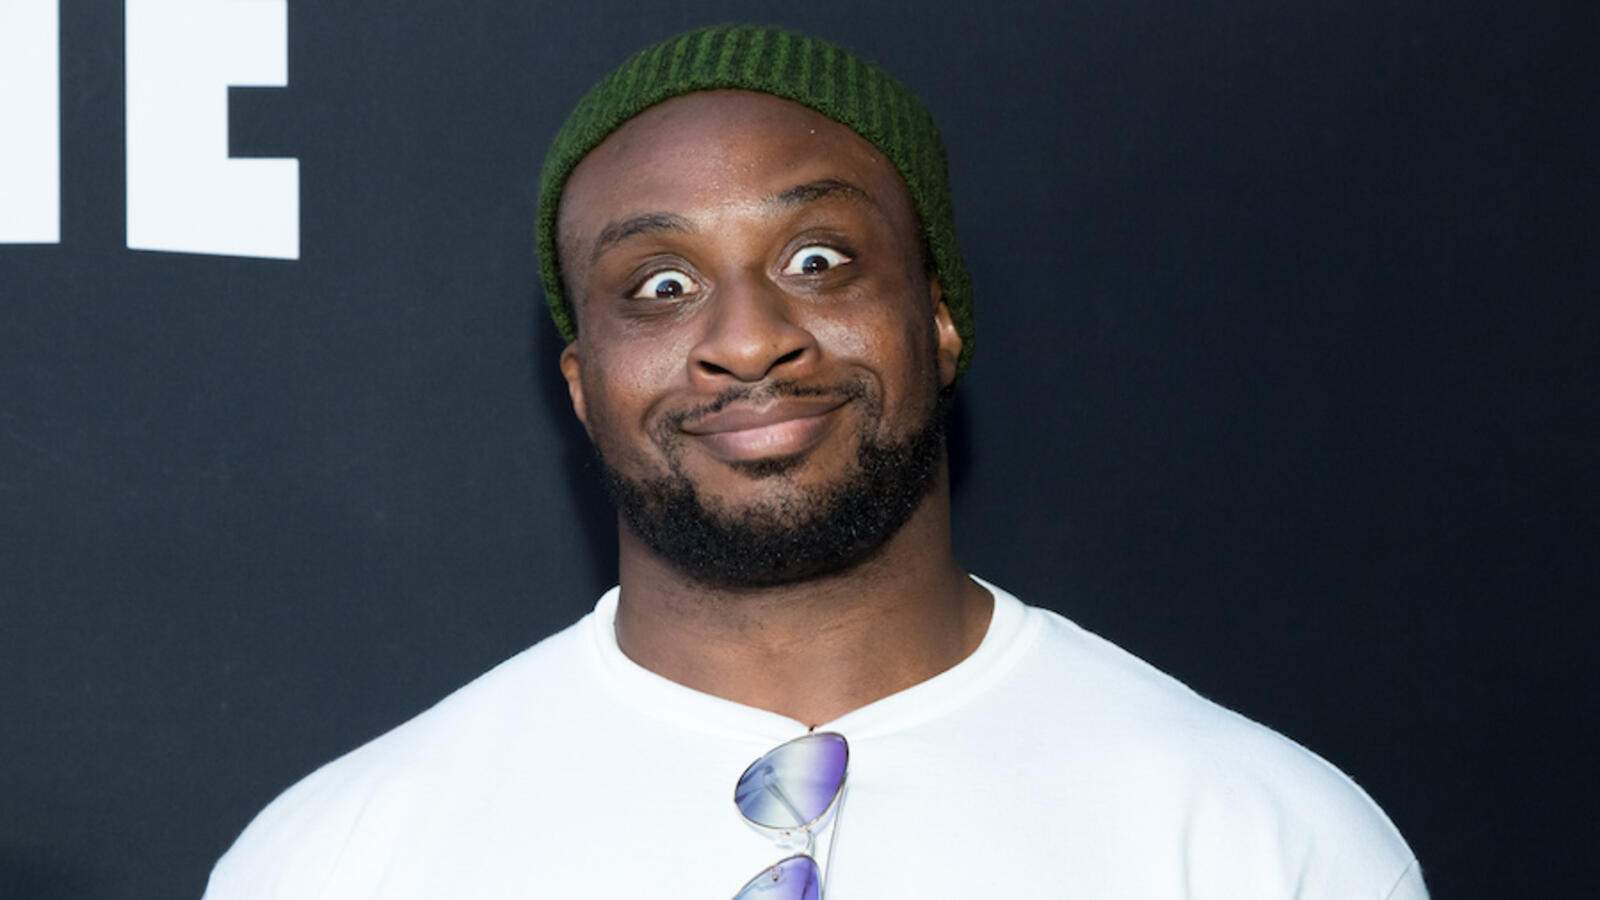 WATCH: Big E Wins WWE Championship, Numerous Other Wrestlers Respond